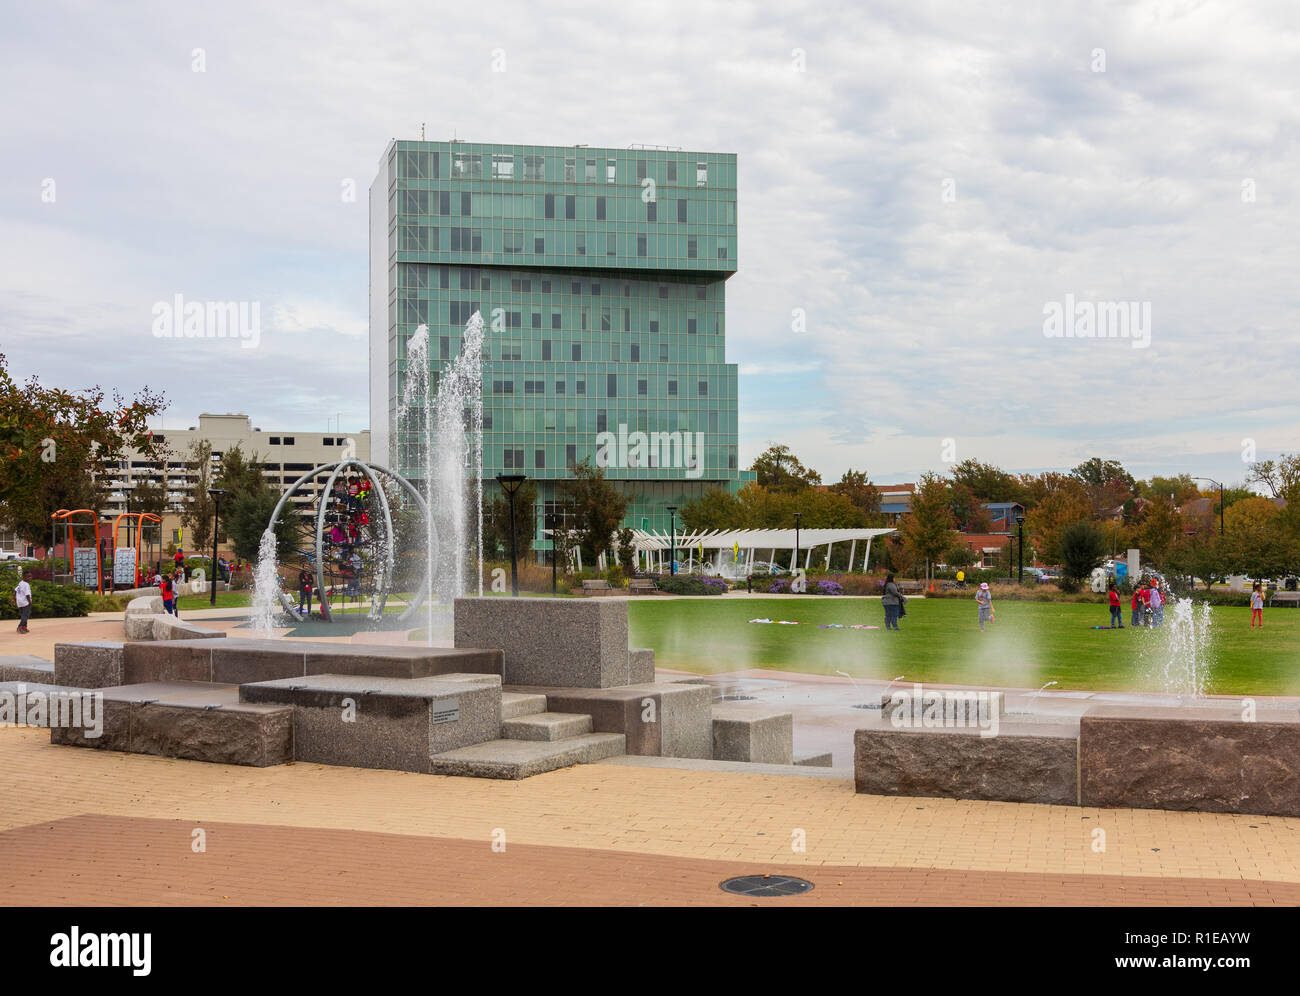 CHARLOTTE, NC, USA-11/08/18: The First Ward Park includes spacious playgrounds. - Stock Image